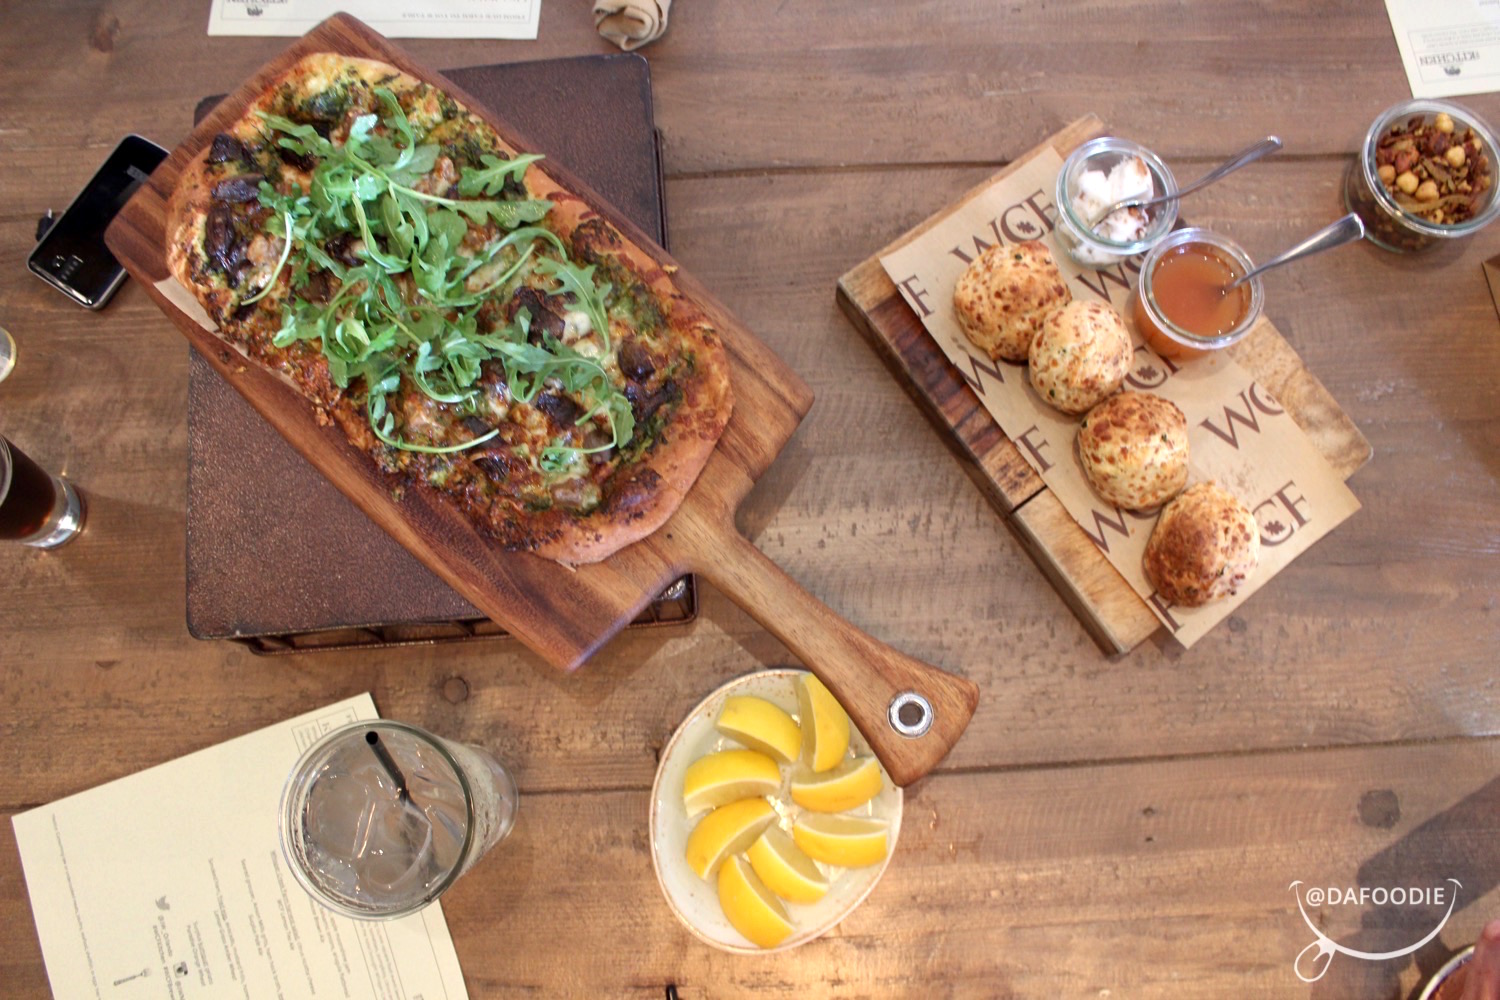 Chive Biscuits and Arugula Flatbread Appetizers